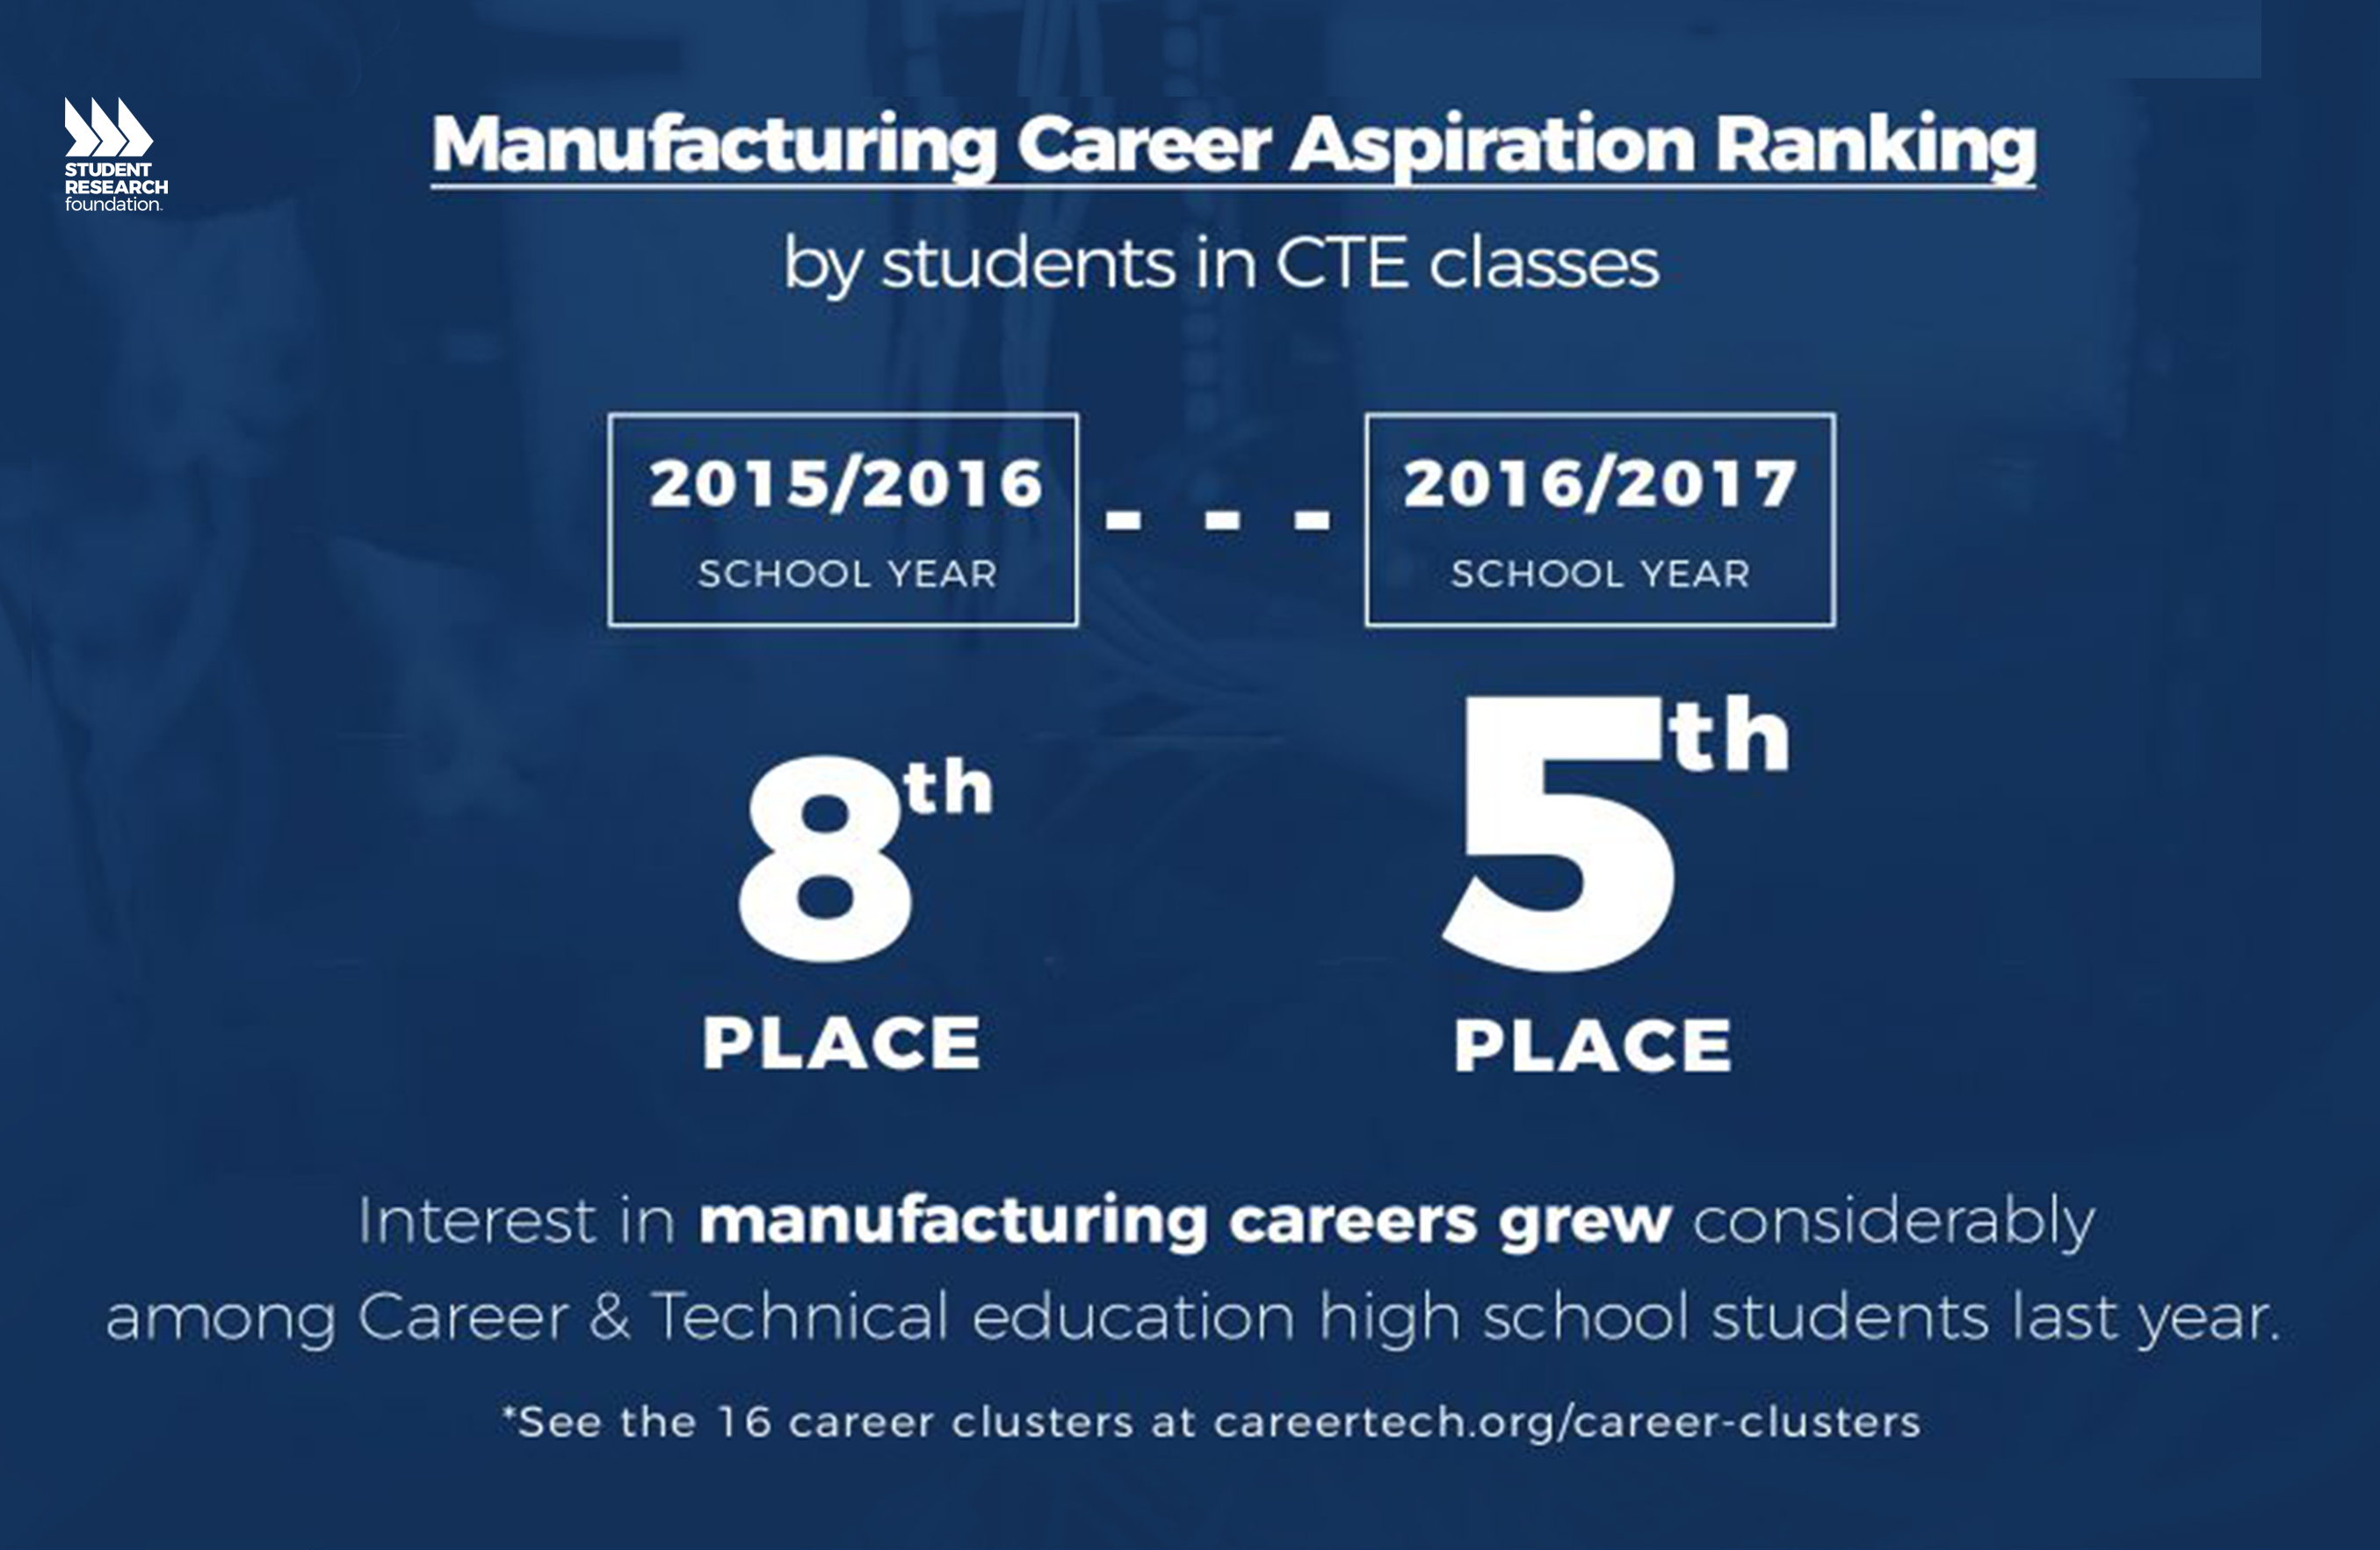 Career Technical Education Trends Student Research Foundation